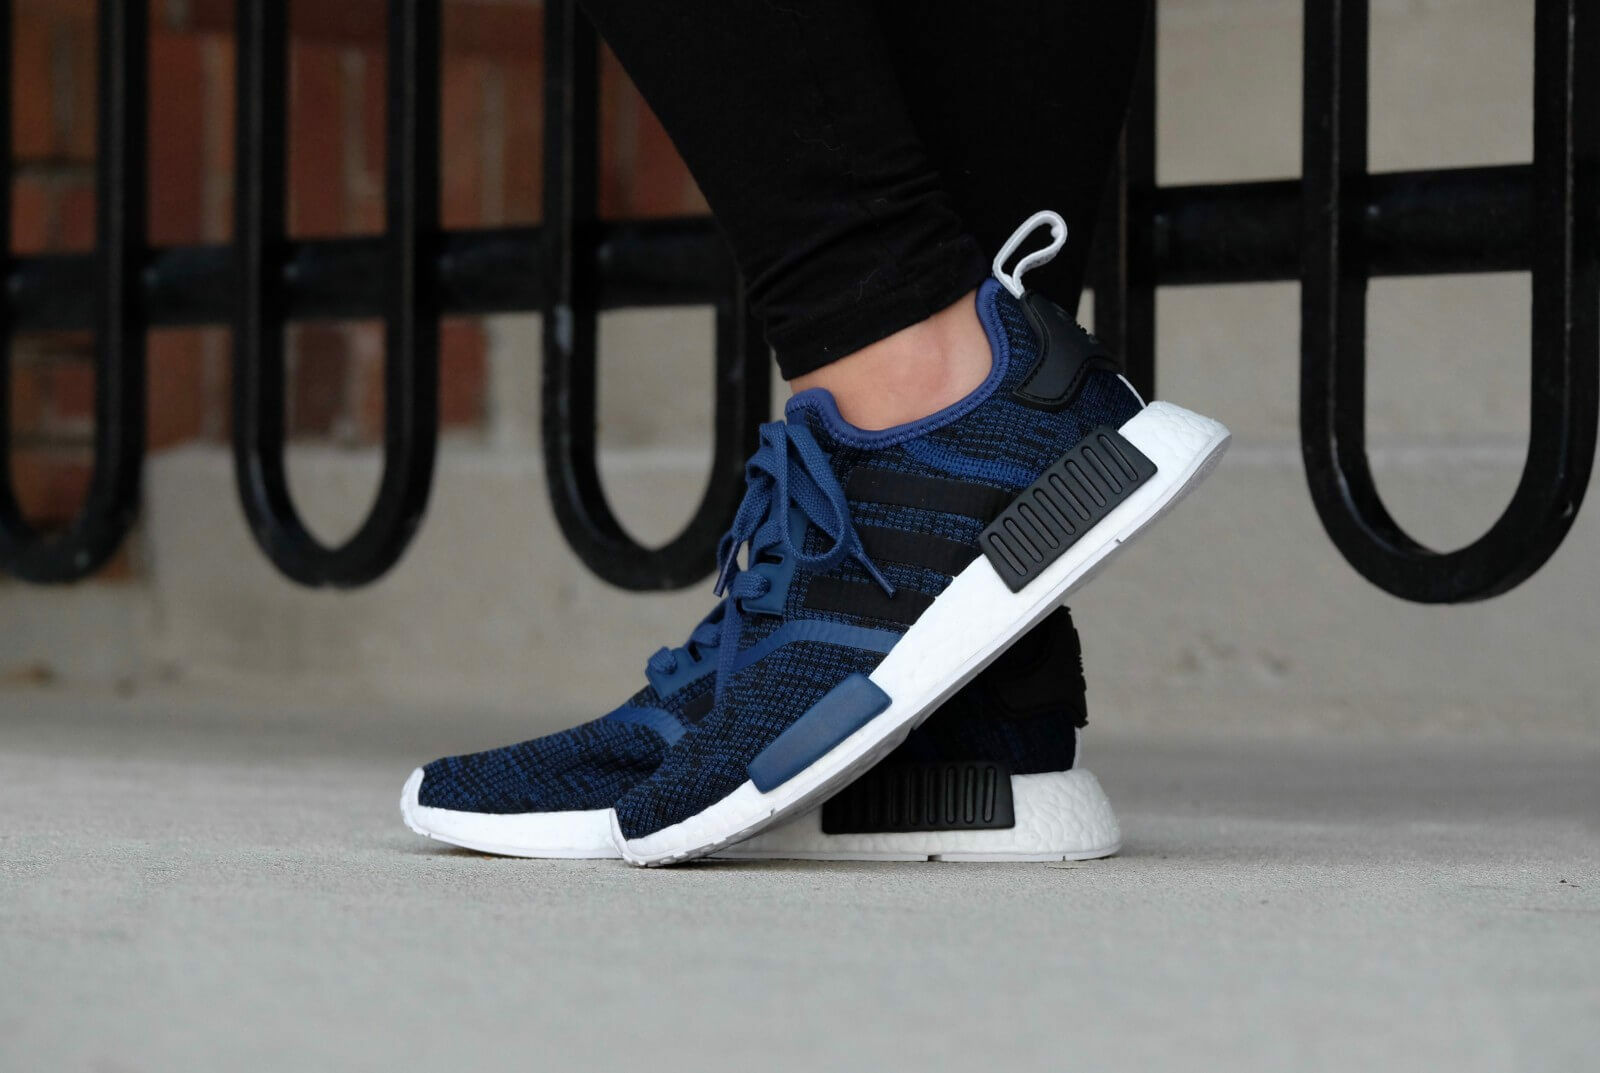 f24d9fdfa Adidas NMD R1 Mystery Blue Nomad Collegiate Navy New Men Size 7.5-13  (BY2775)